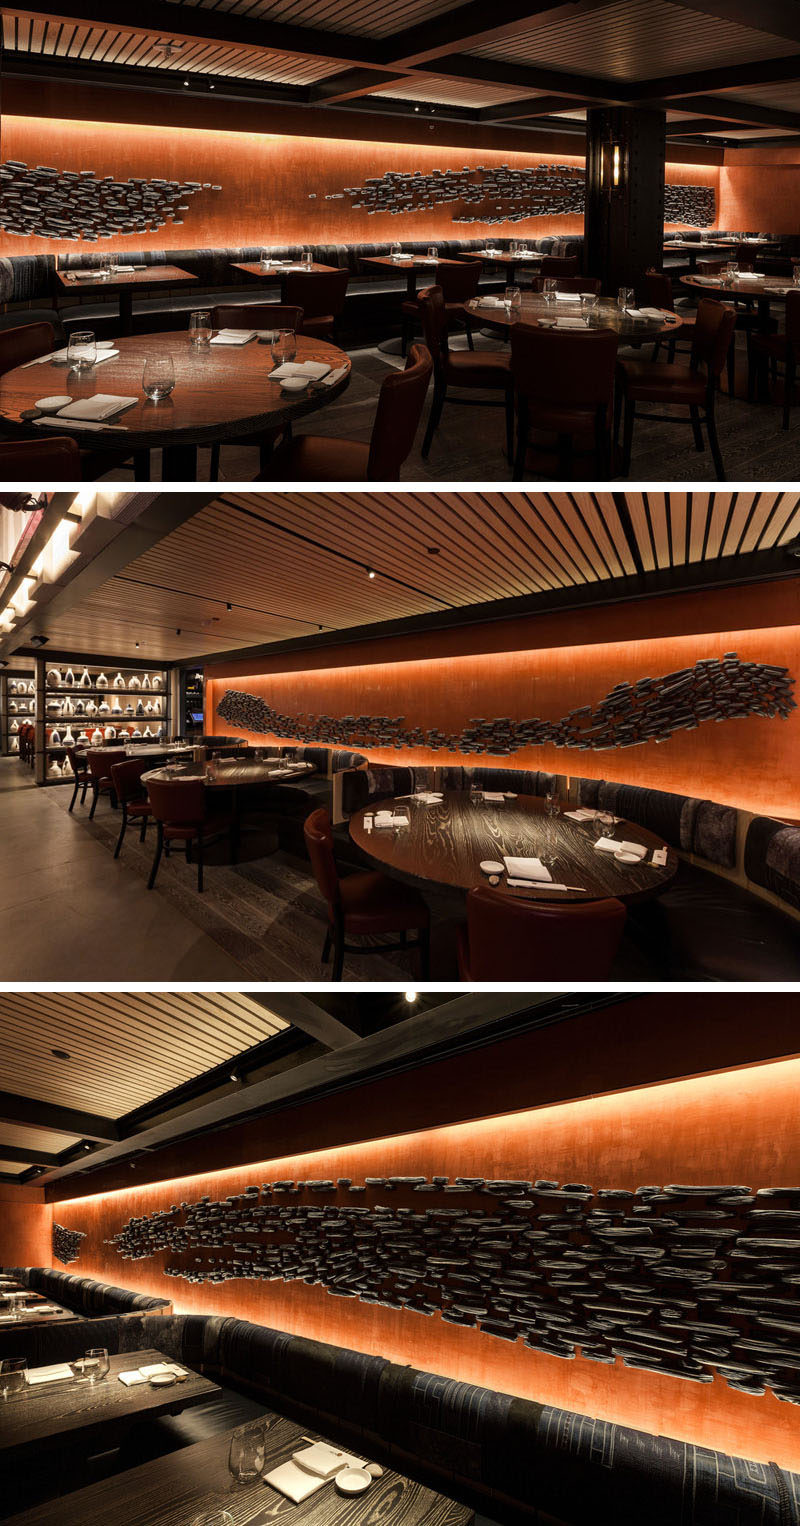 Nobu Downtown (NYC) has a large ceramic art installation along its walls. The installation is made up of 3,500 ceramic pieces that resemble briquettes of charred wood, organized to look like the positive and negative space from the stroke of a large brush.